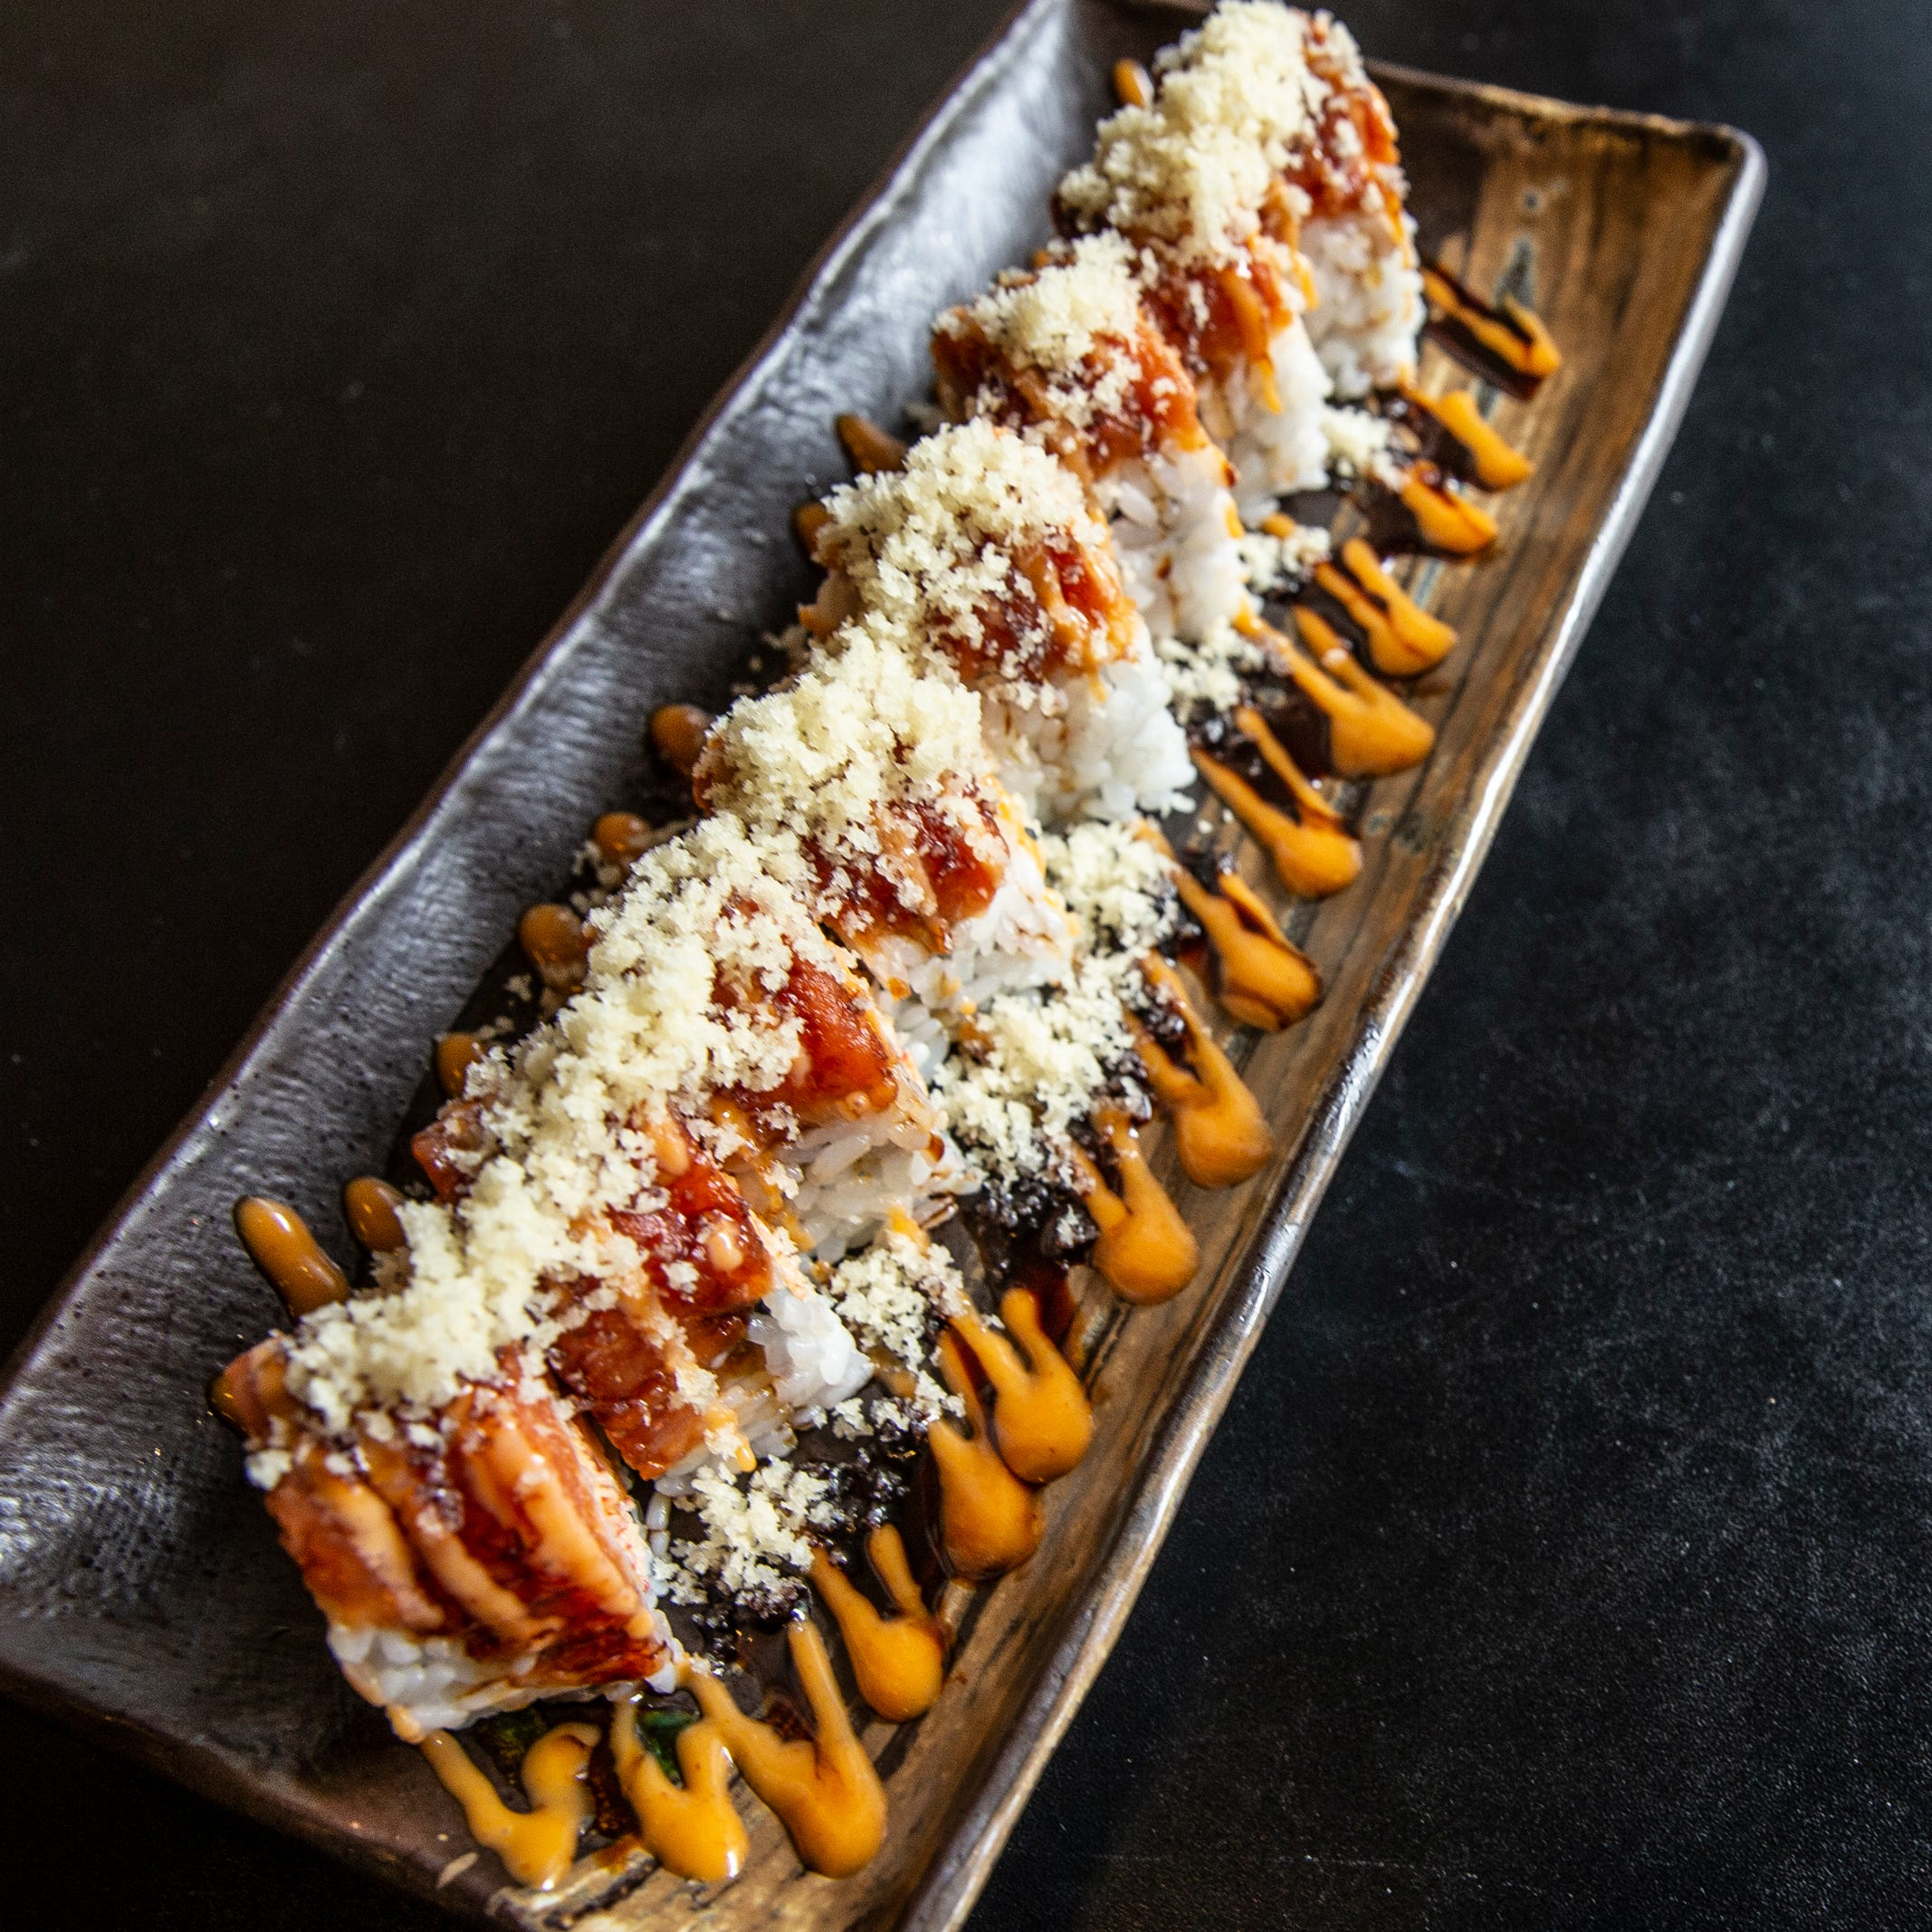 Prospect sushi bar may over accessorize its rolls but it doesn't sacrifice taste